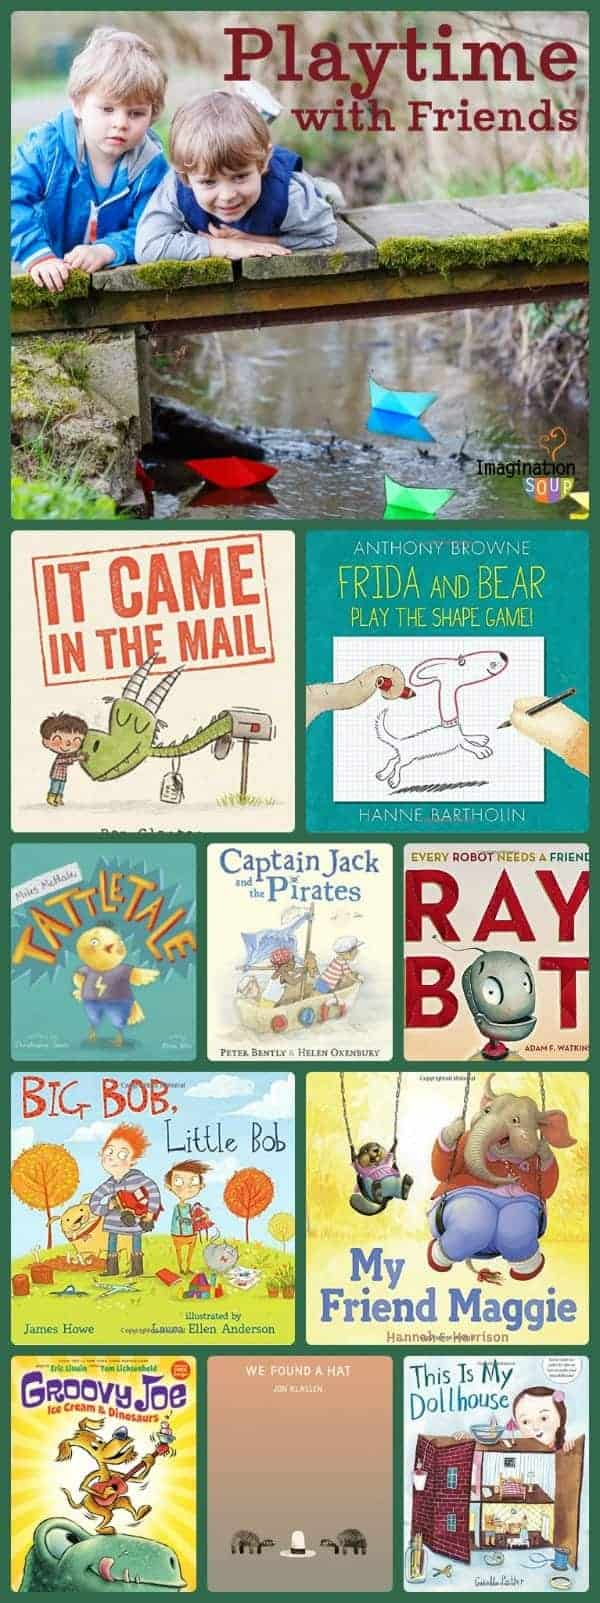 Children's books about friendship, play, and sharing